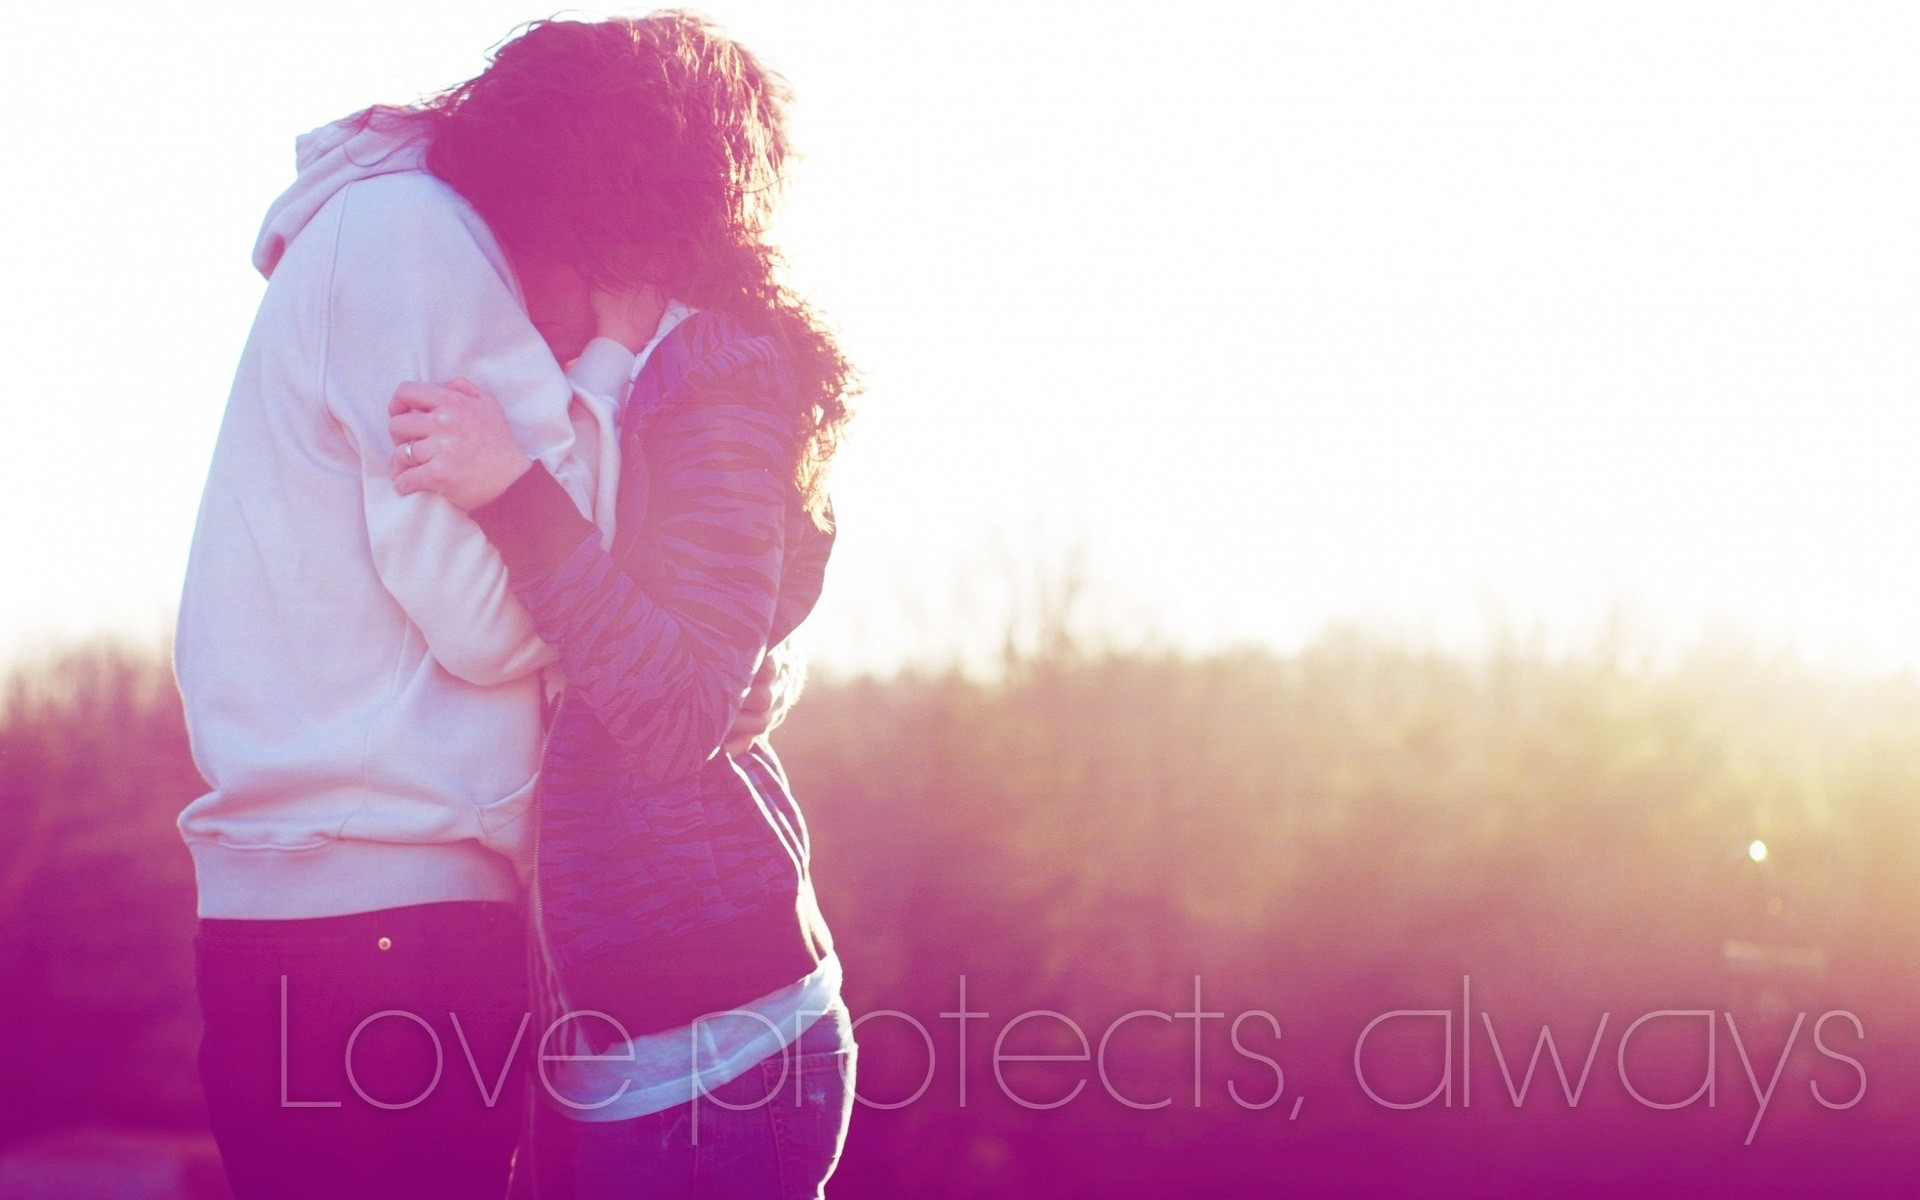 1920x1200 love-protect-always-couple-hugs-and-kisses-wallpapers